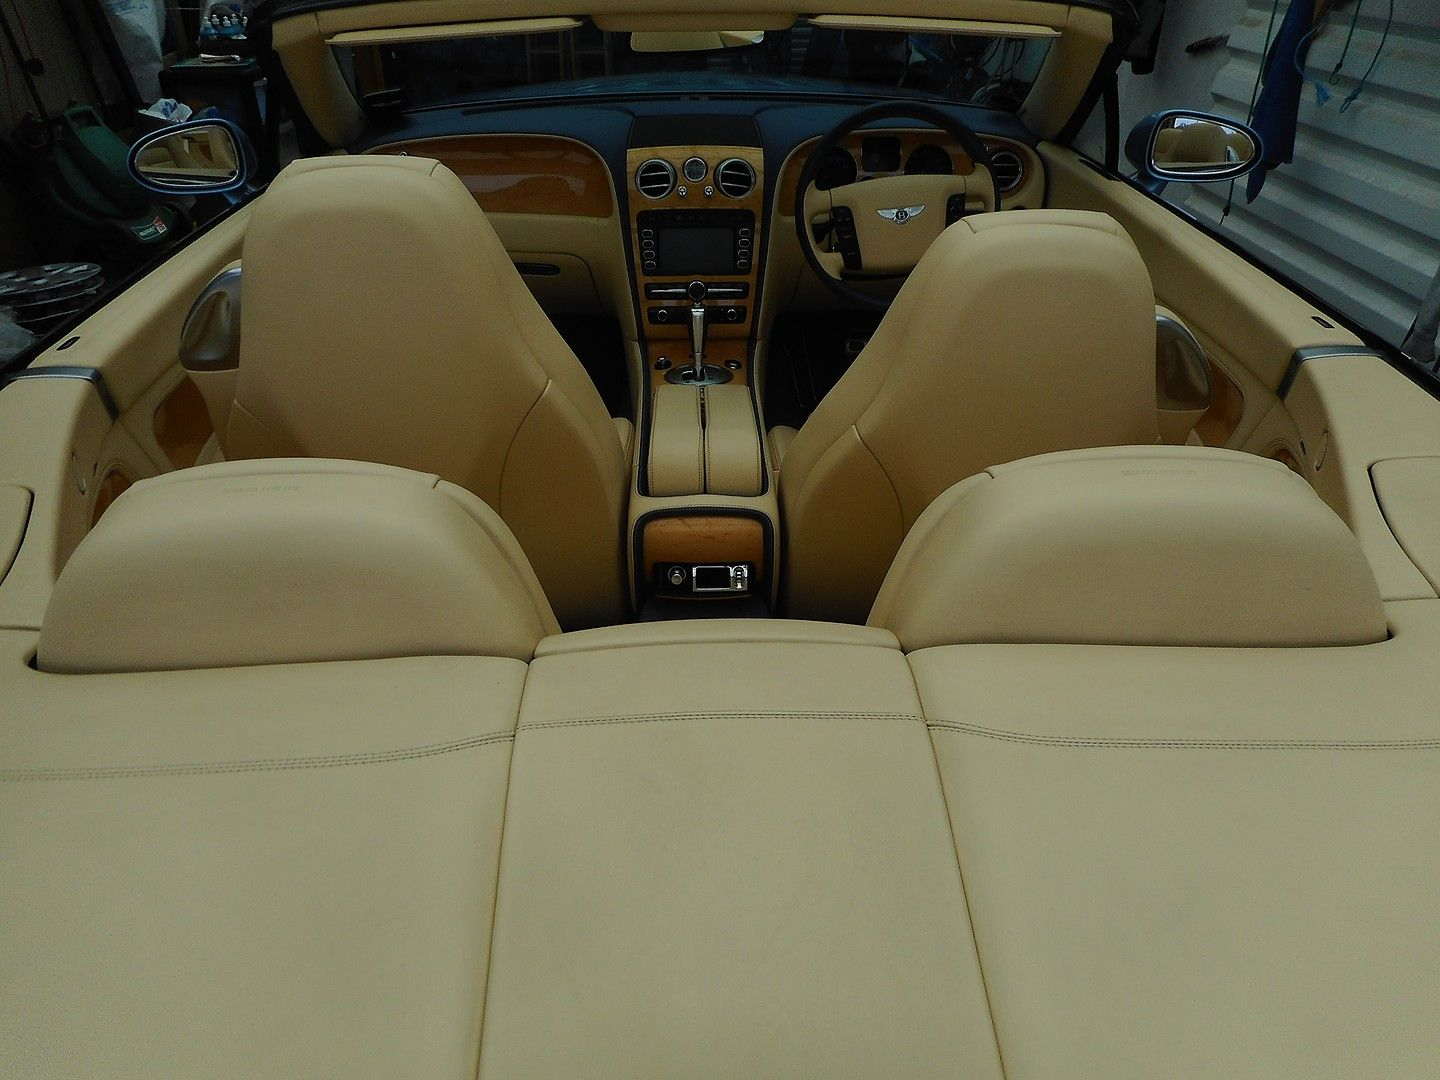 BENTLEY Continental GTC (2007) - Picture 21